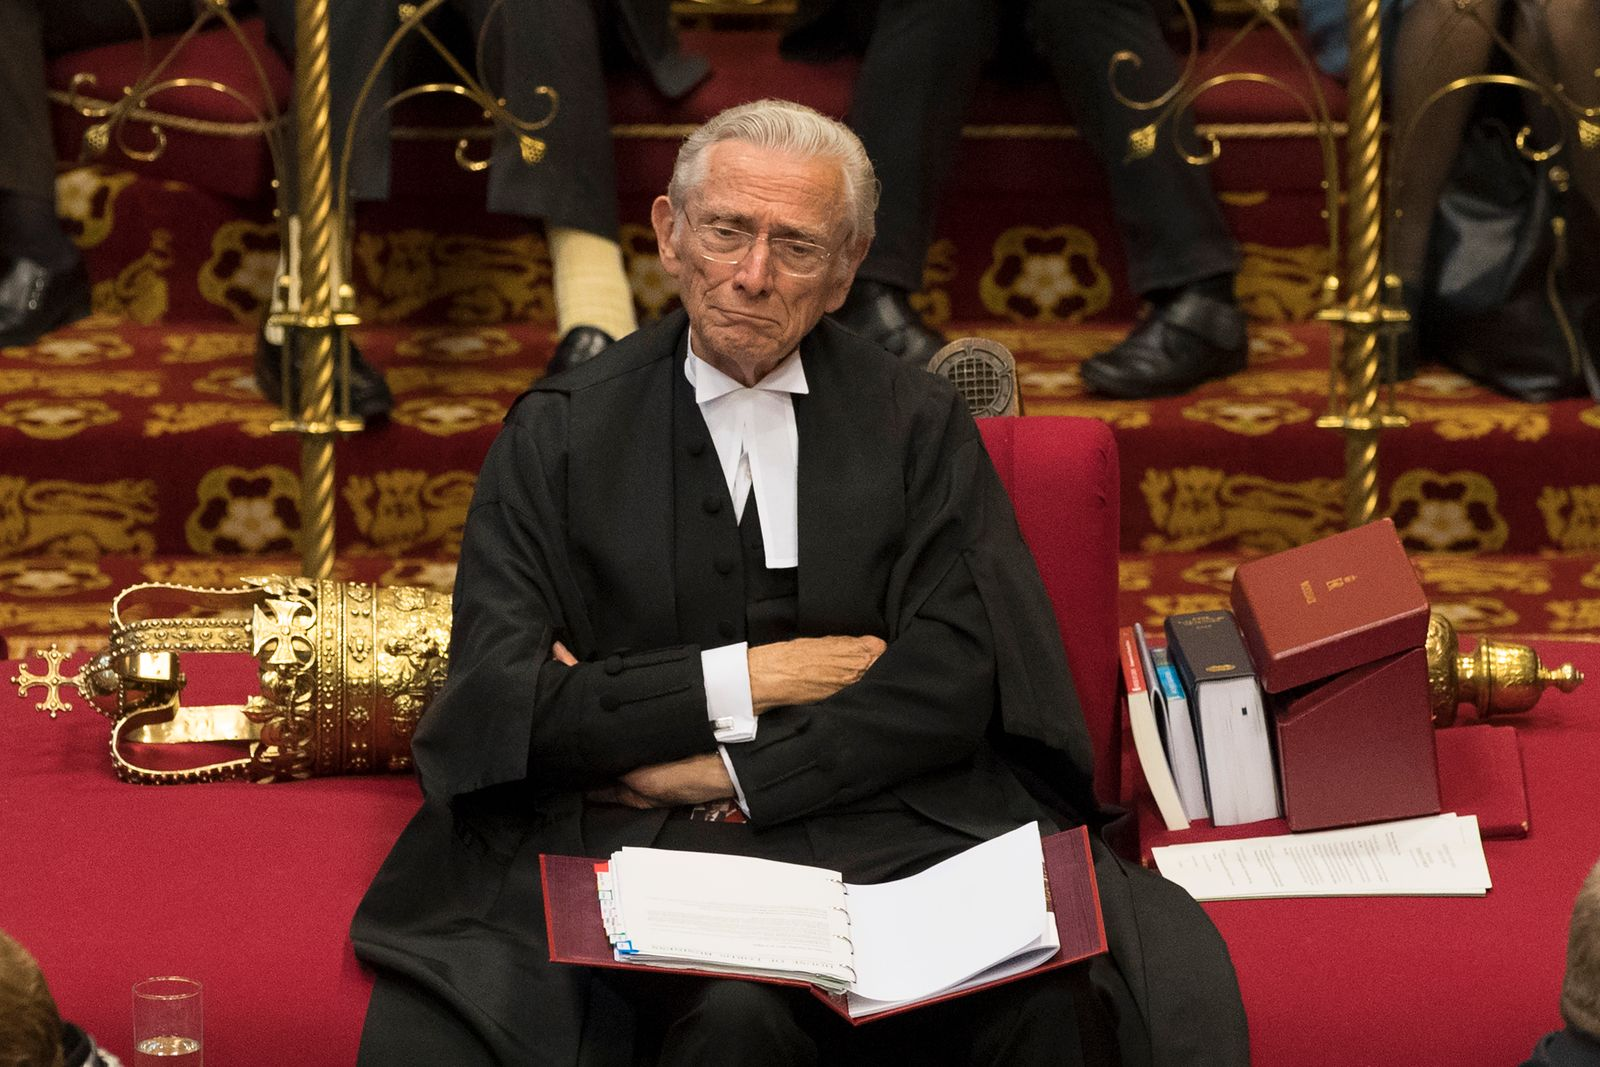 Lord Speaker's Committee On The Size Of The House Of Lords Reports